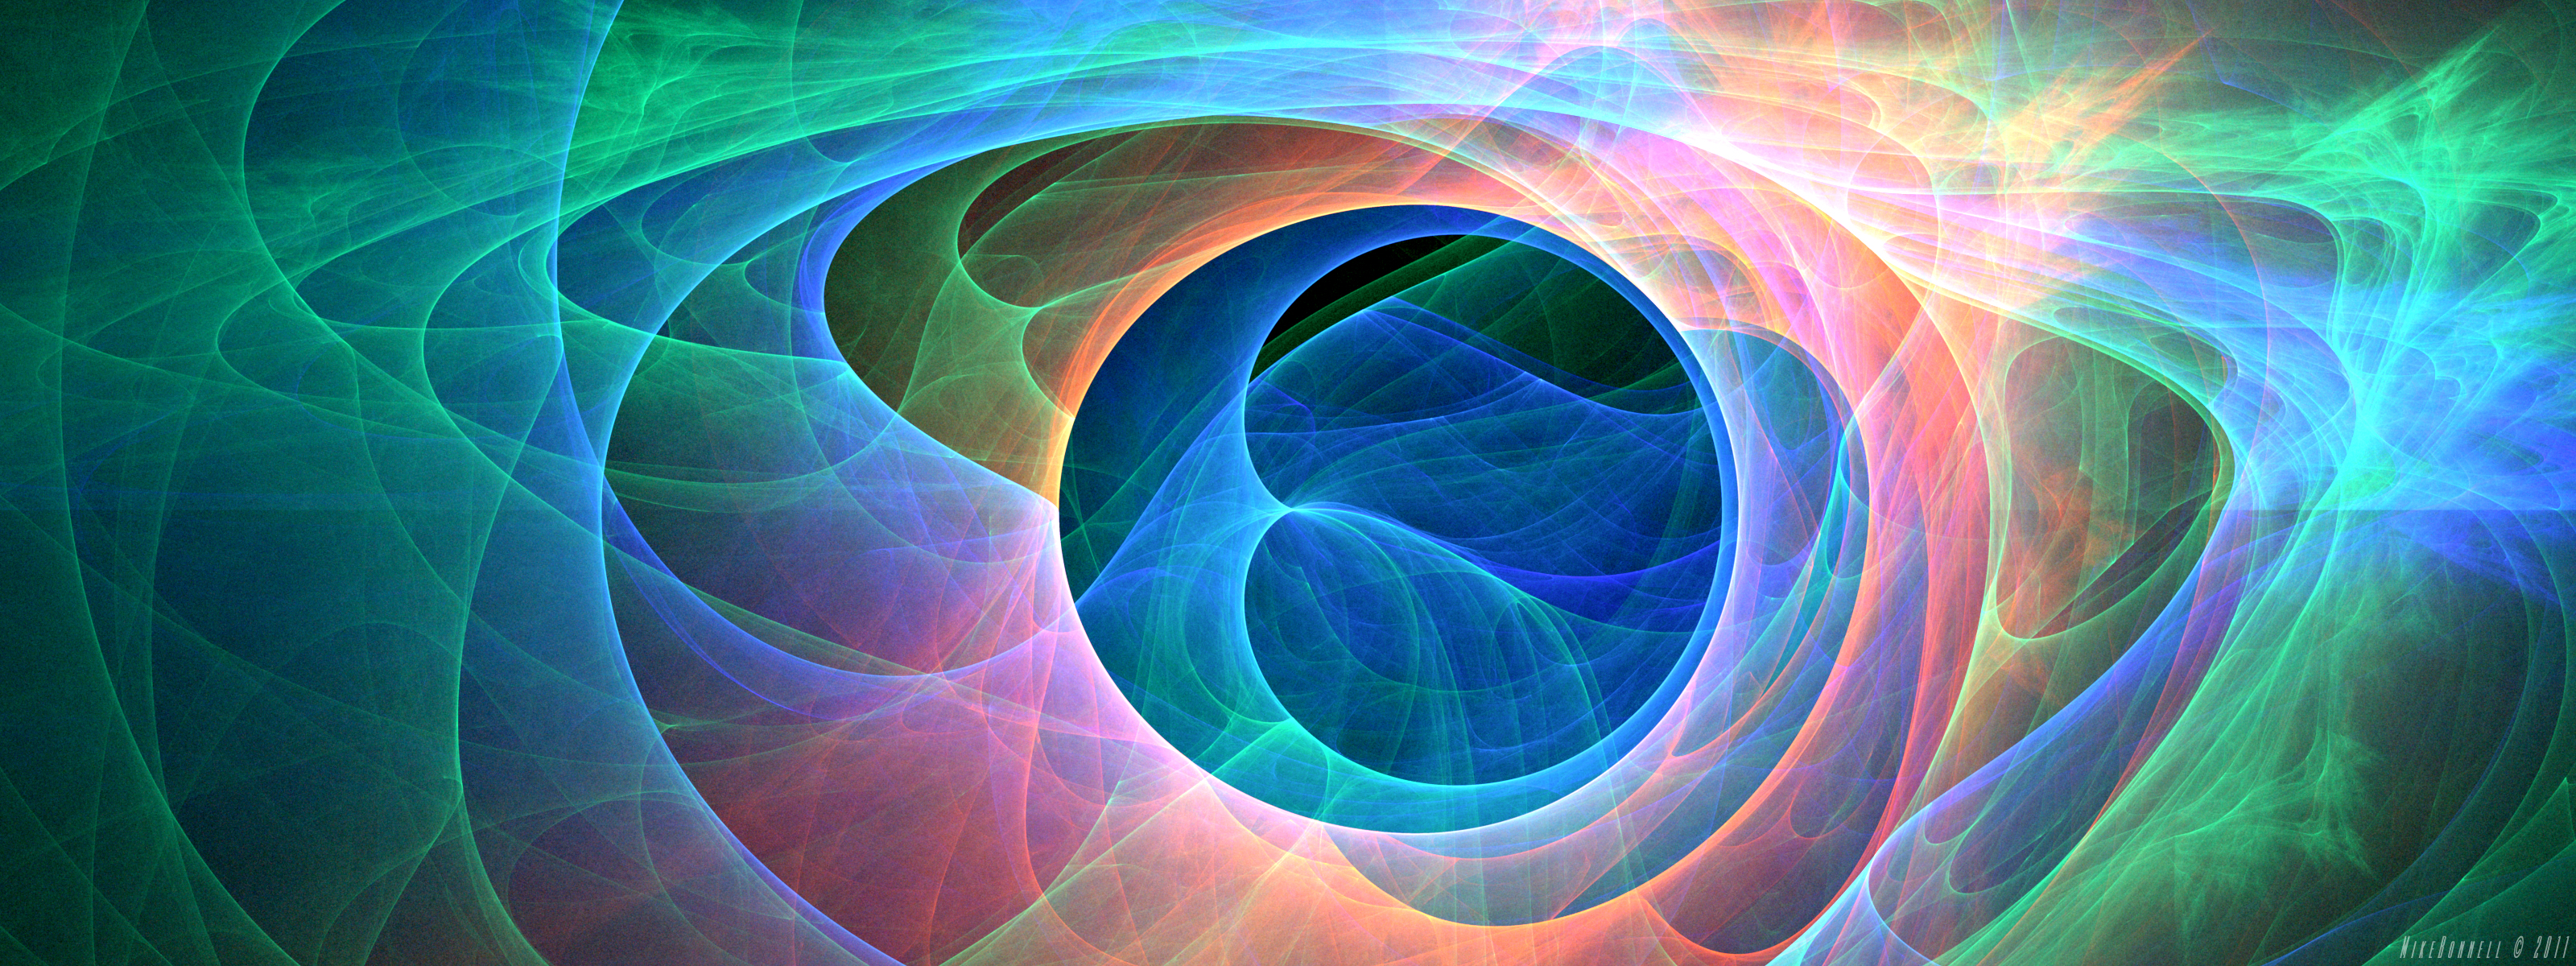 Computer Wallpapers Desktop Backgrounds Abstract Images Posters 3200x1200